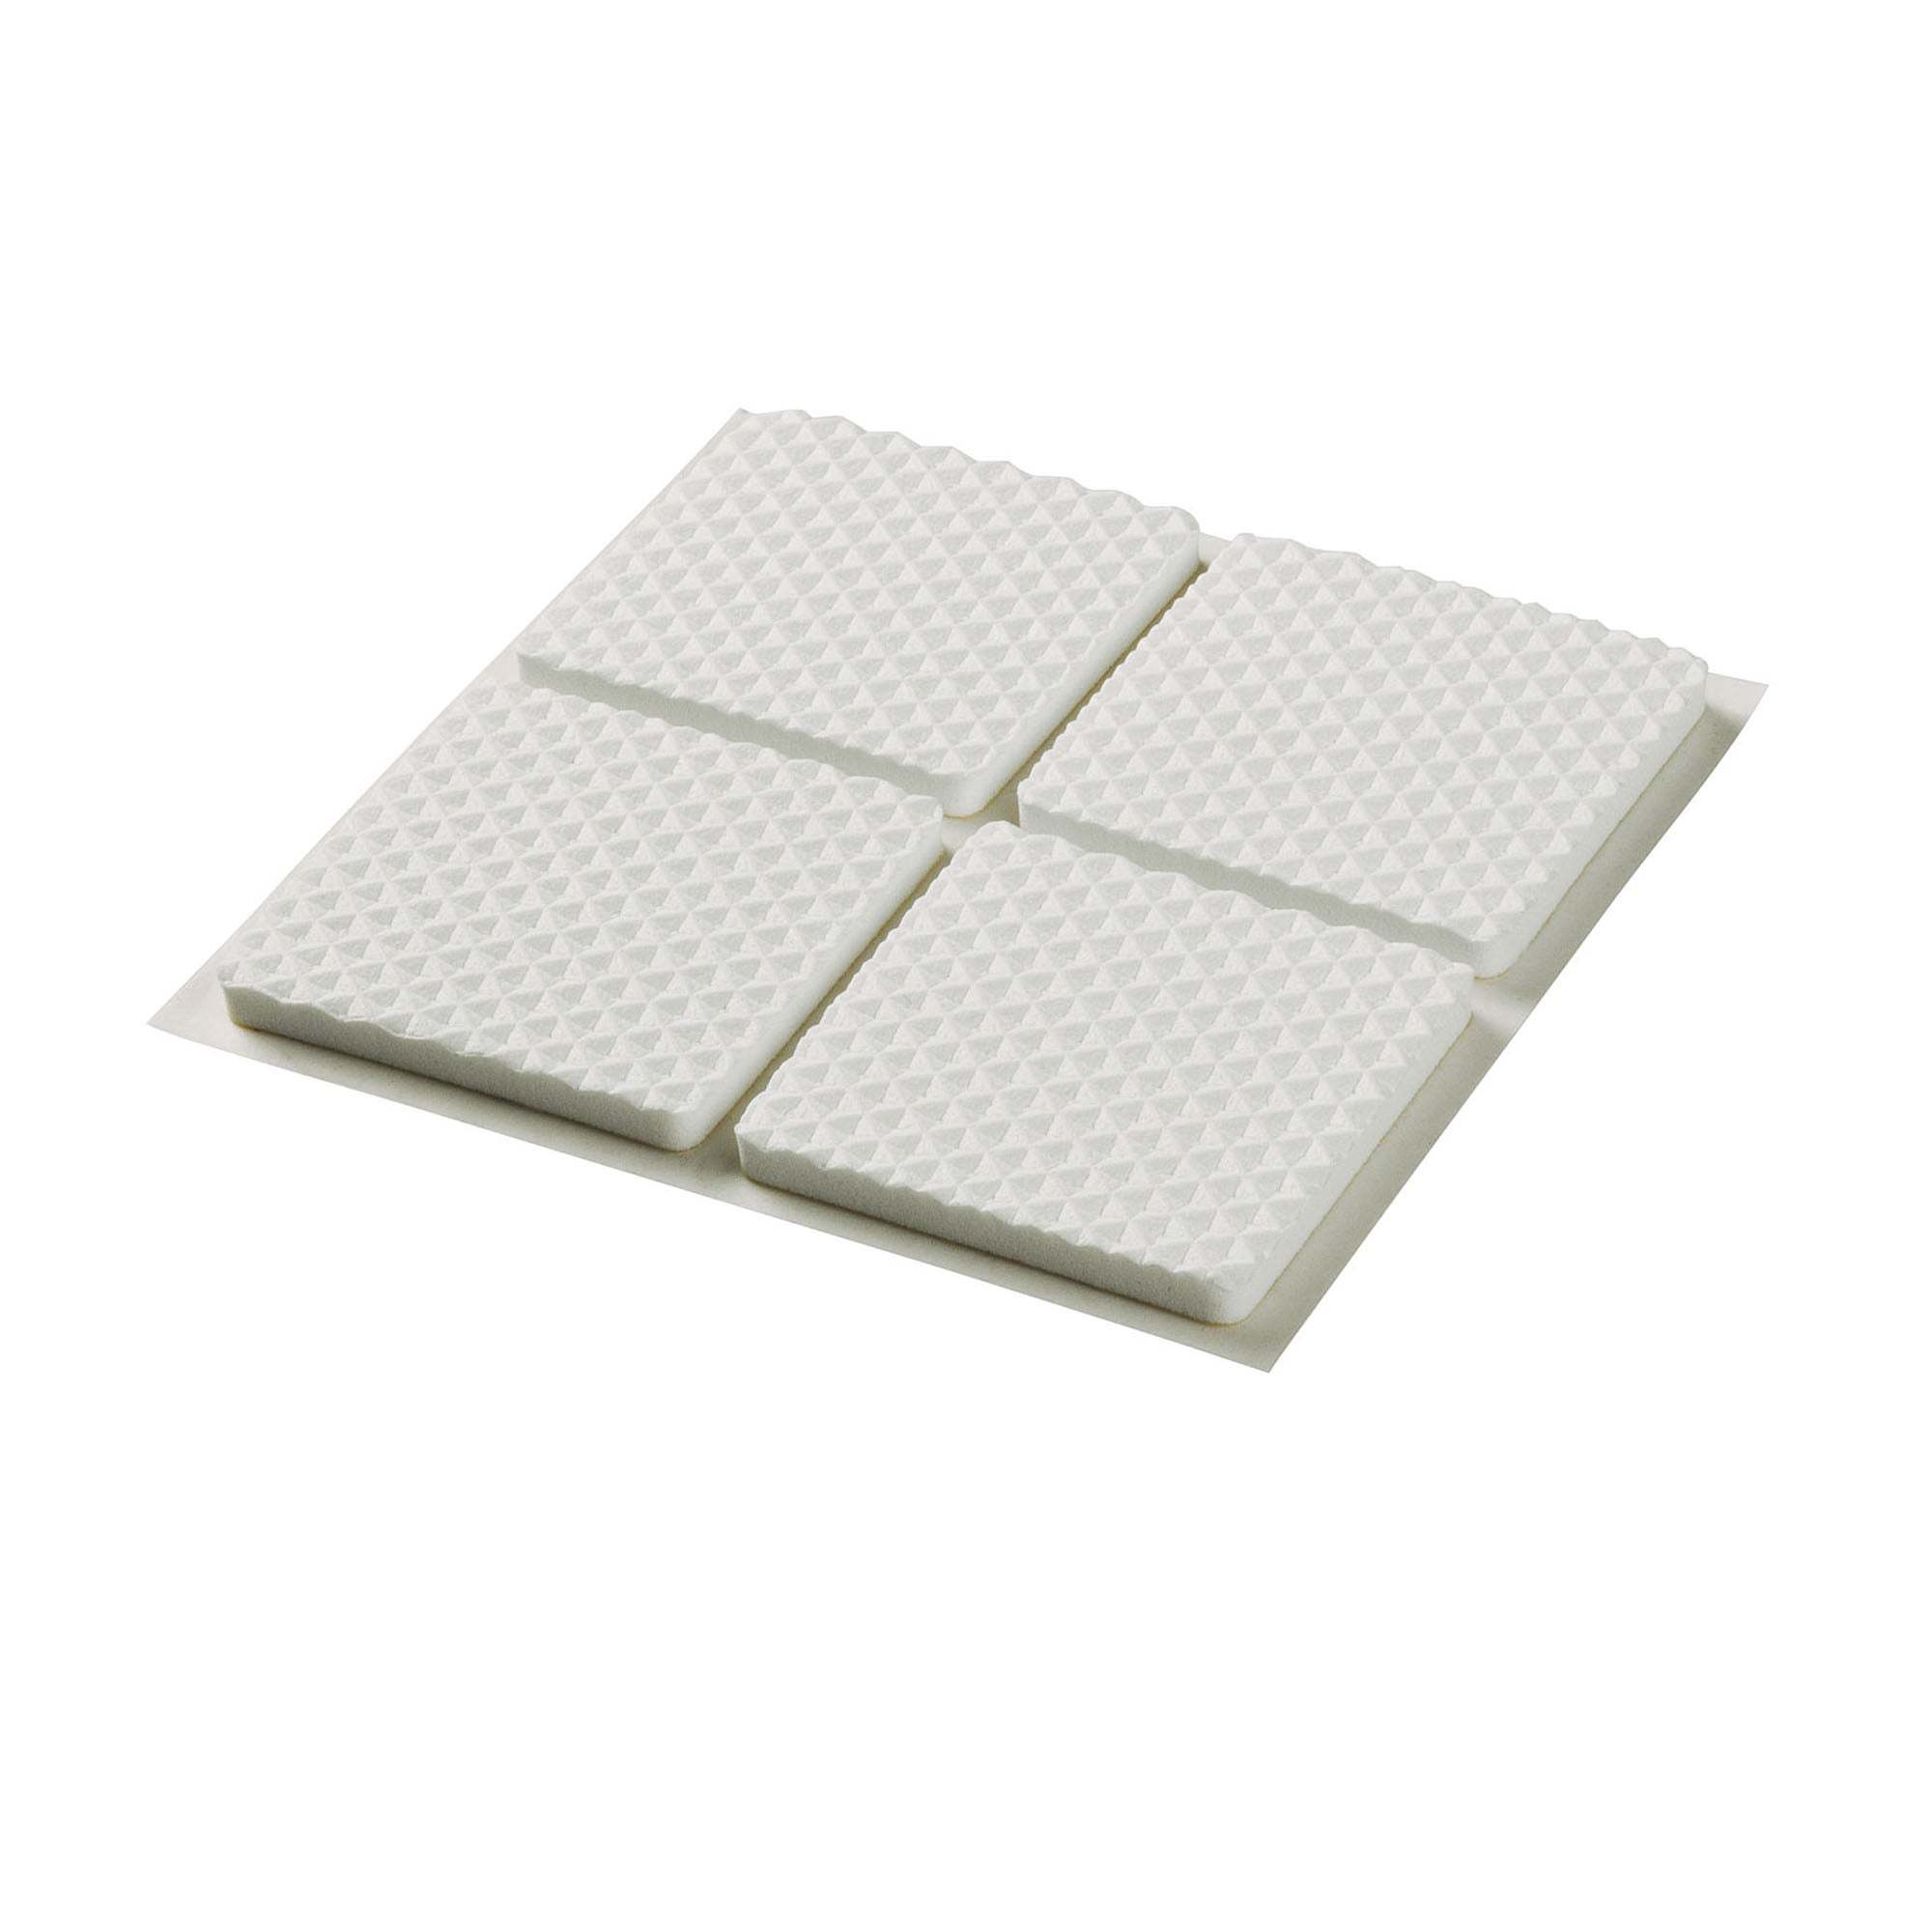 Shock Absorber Pads